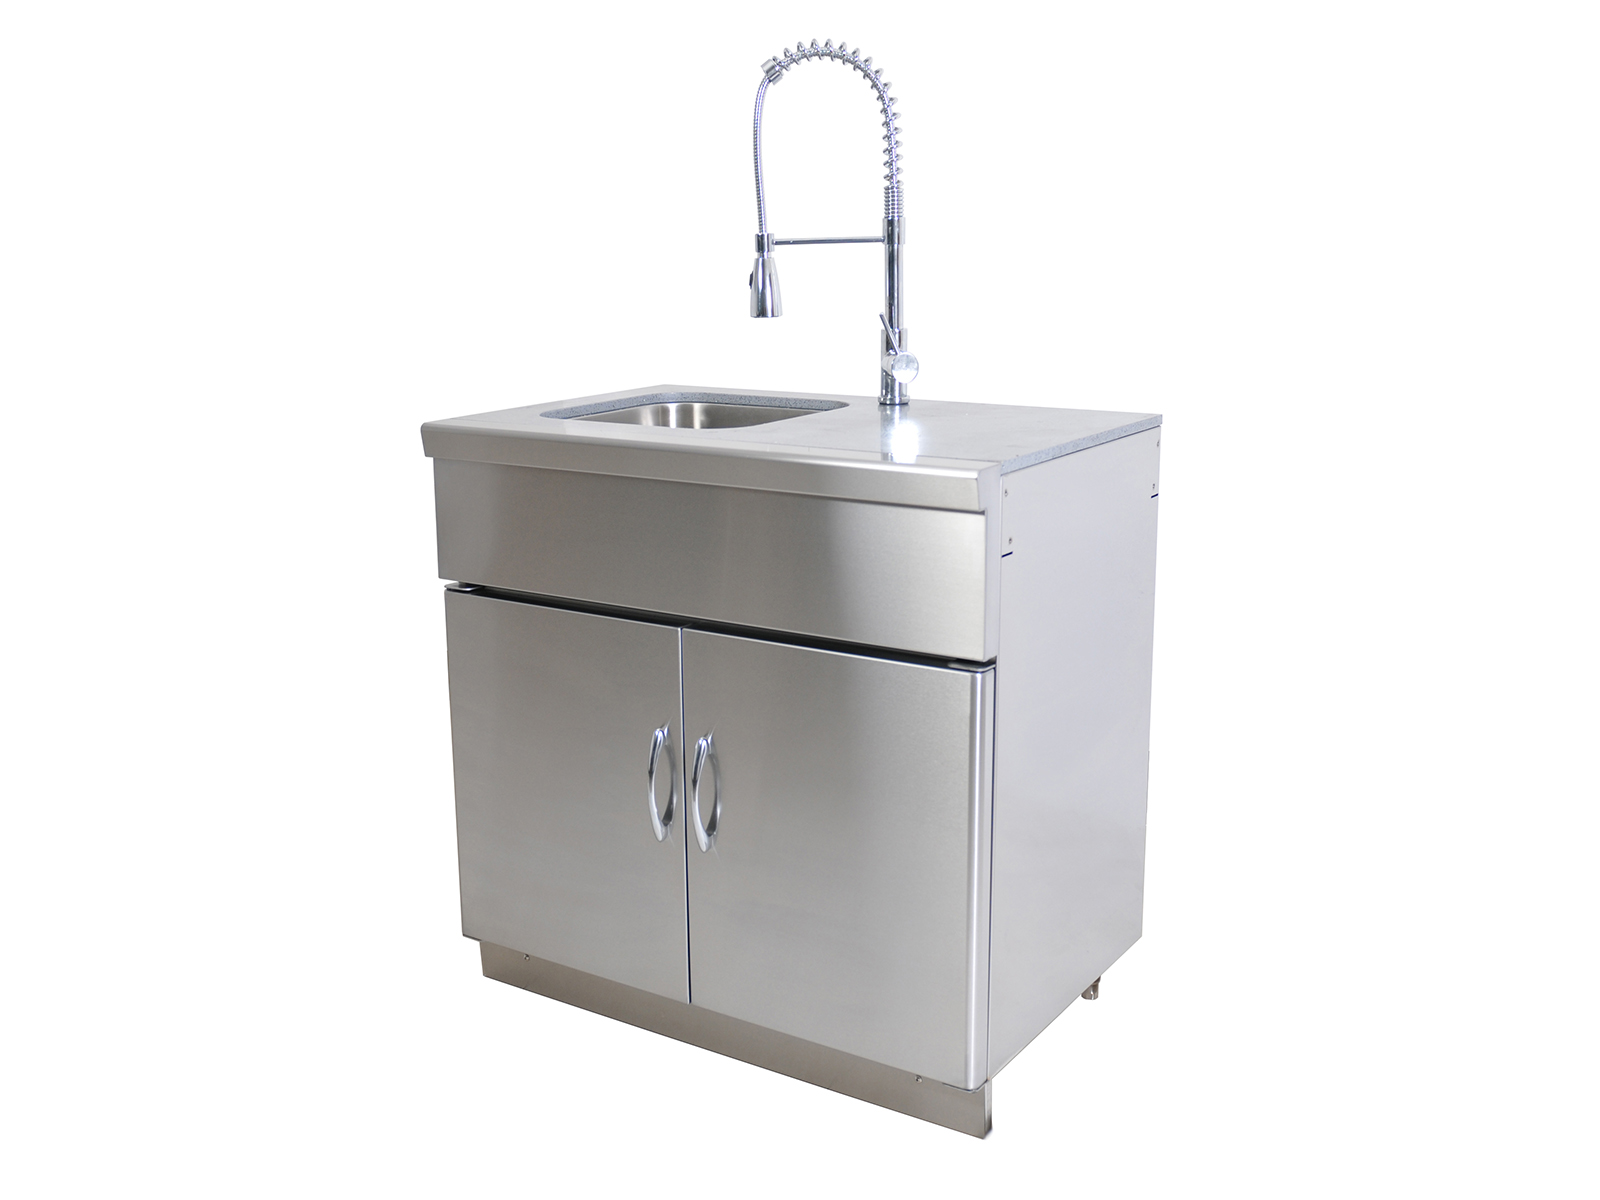 Outdoor Kitchen Module - Sink Unit - Grandfire BBQ